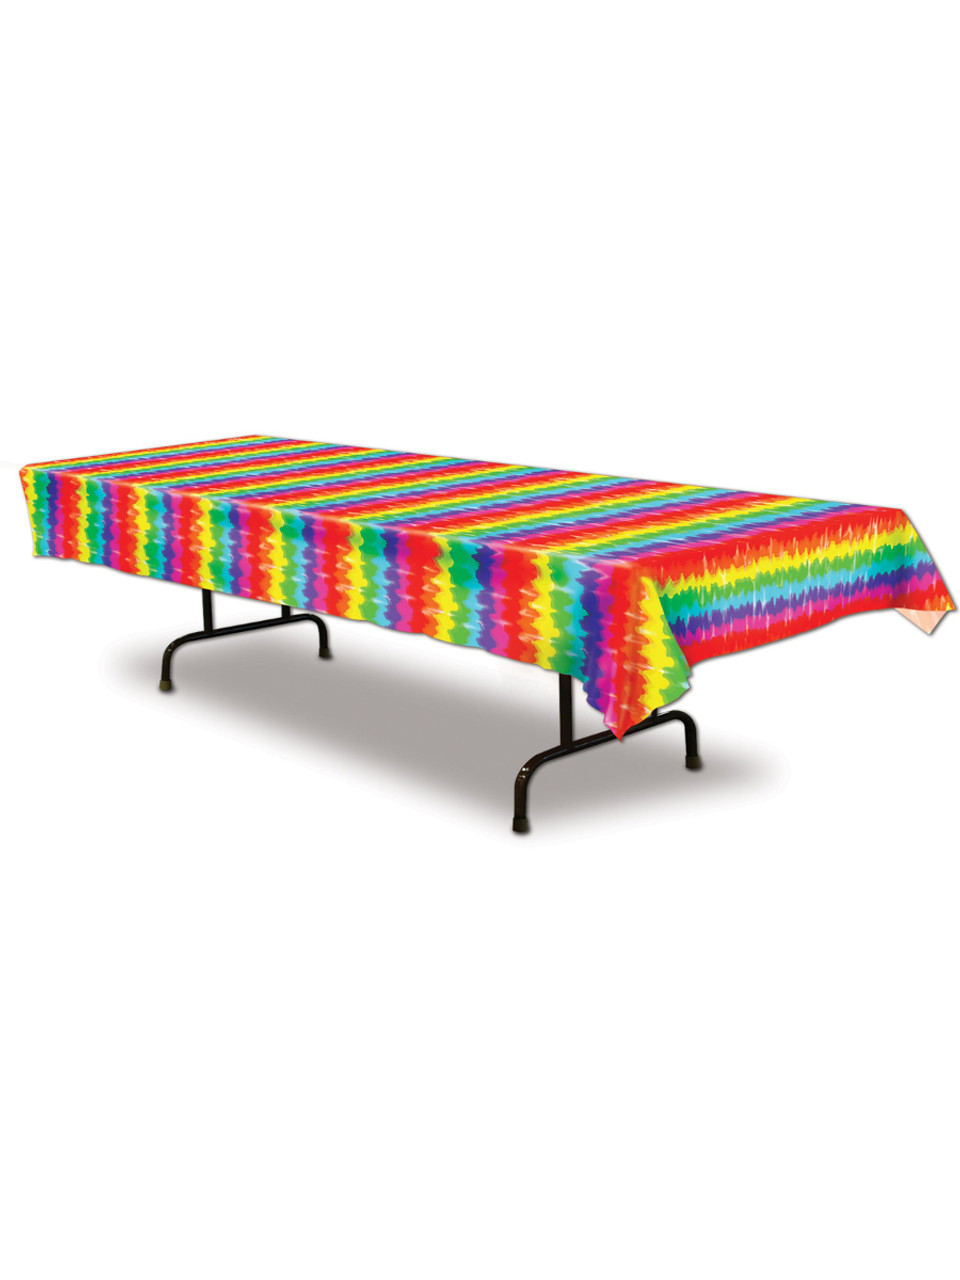 259 : tie dye table covers - amorenlinea.org